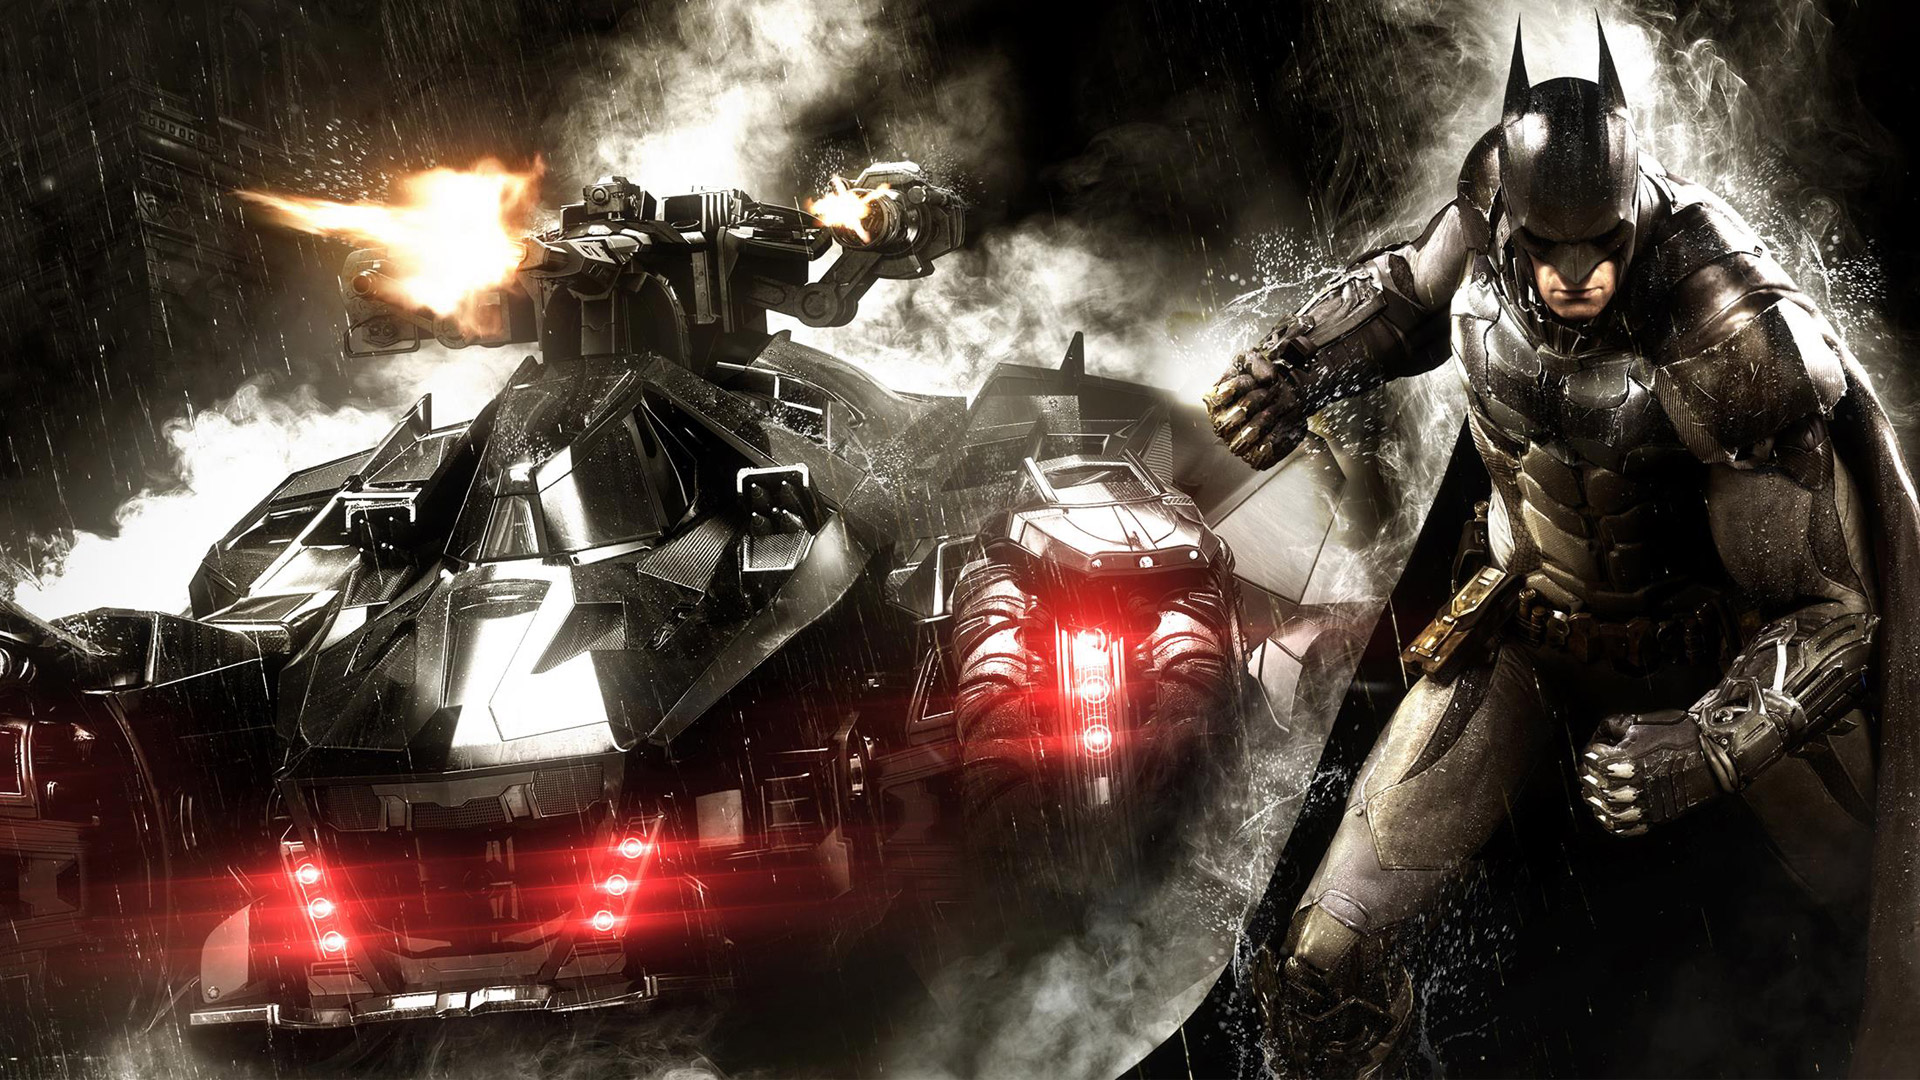 Batman Arkham Knight Wallpaper HD by FreddyLolBear 1920x1080